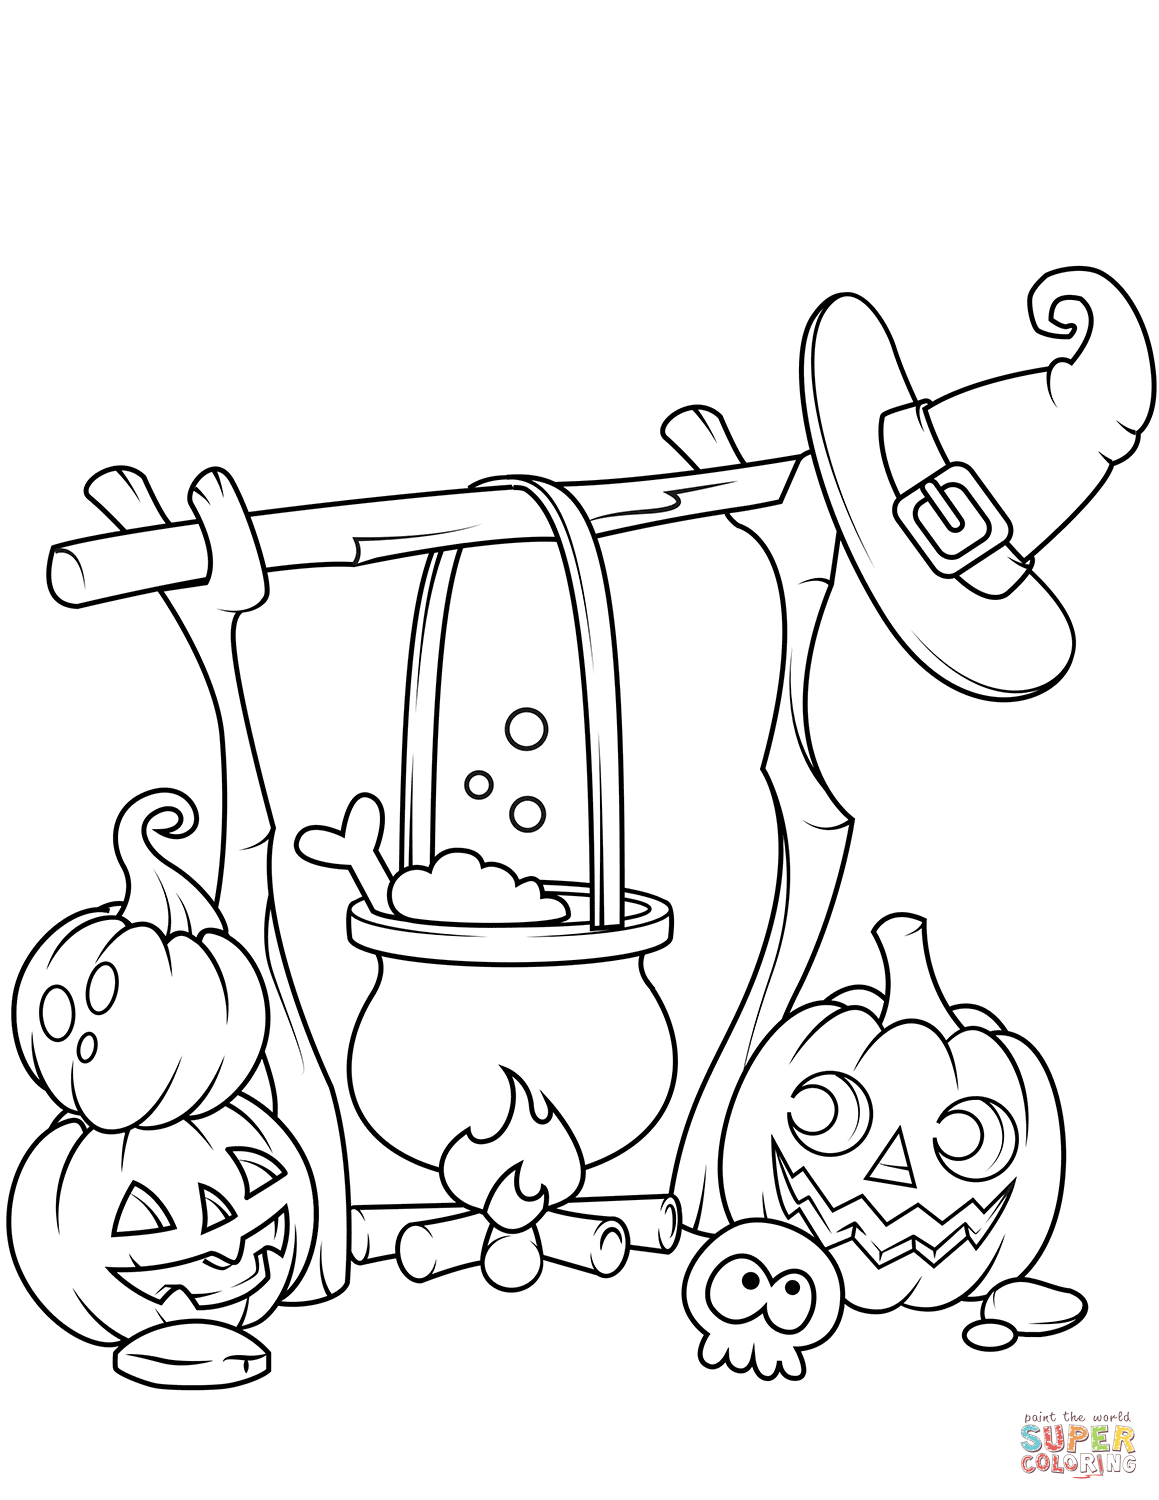 Jack O Lanterns And A Boiling Cauldron Coloring Page